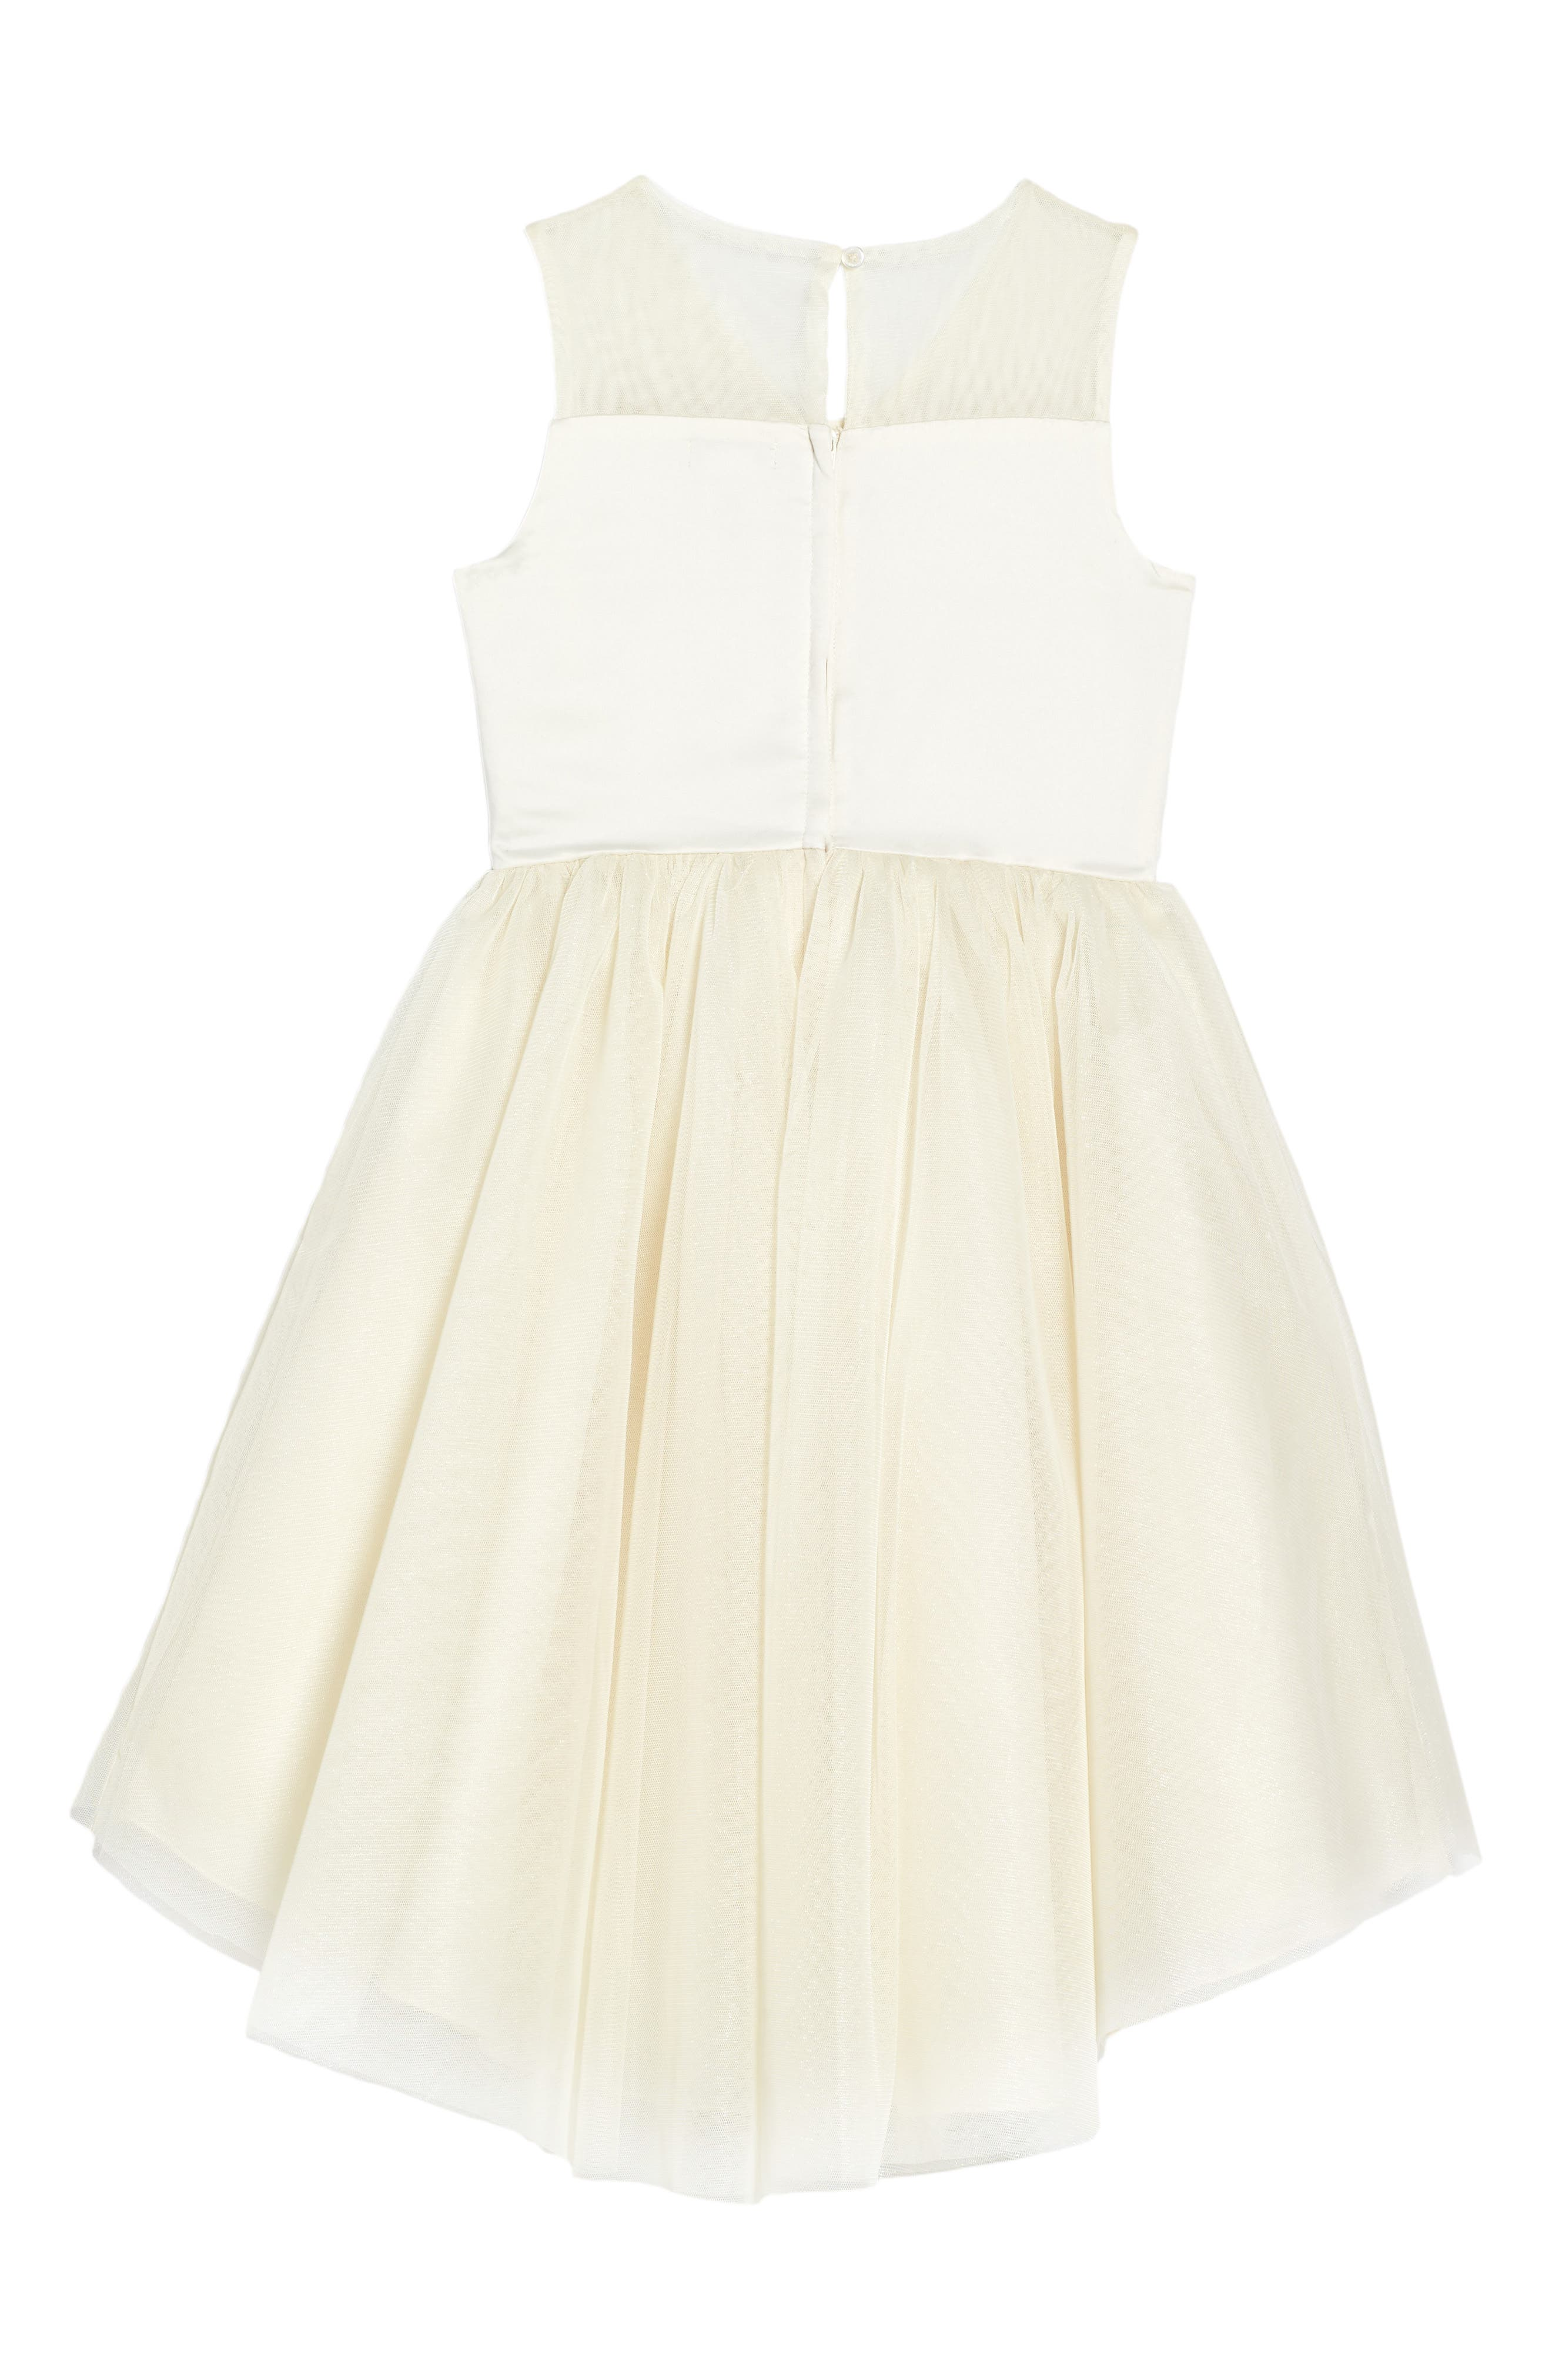 Nanette Lapore Butterfly Dress,                             Alternate thumbnail 2, color,                             Cream